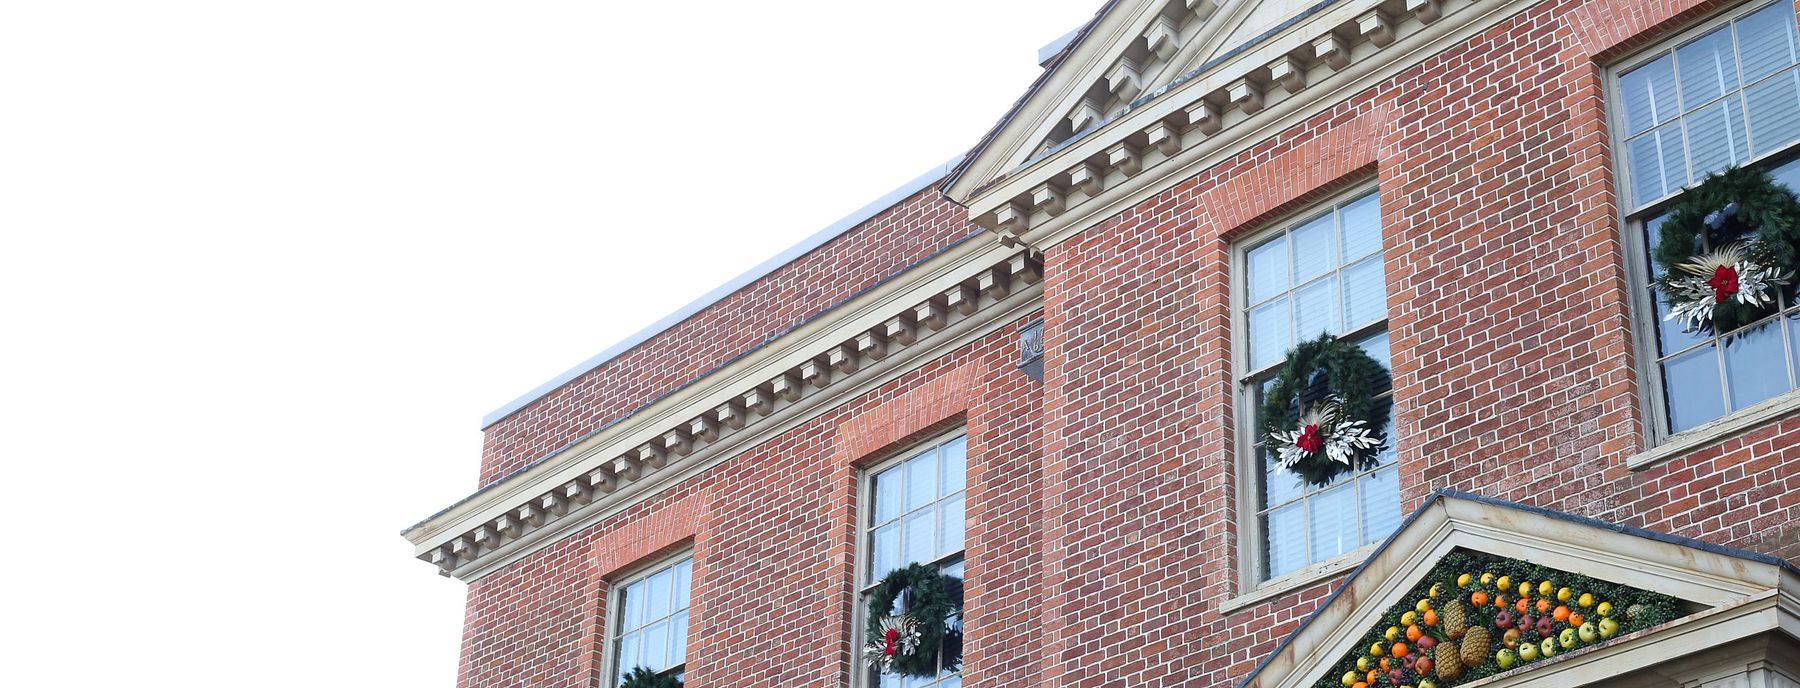 Tryon Palace decorated for Christmas